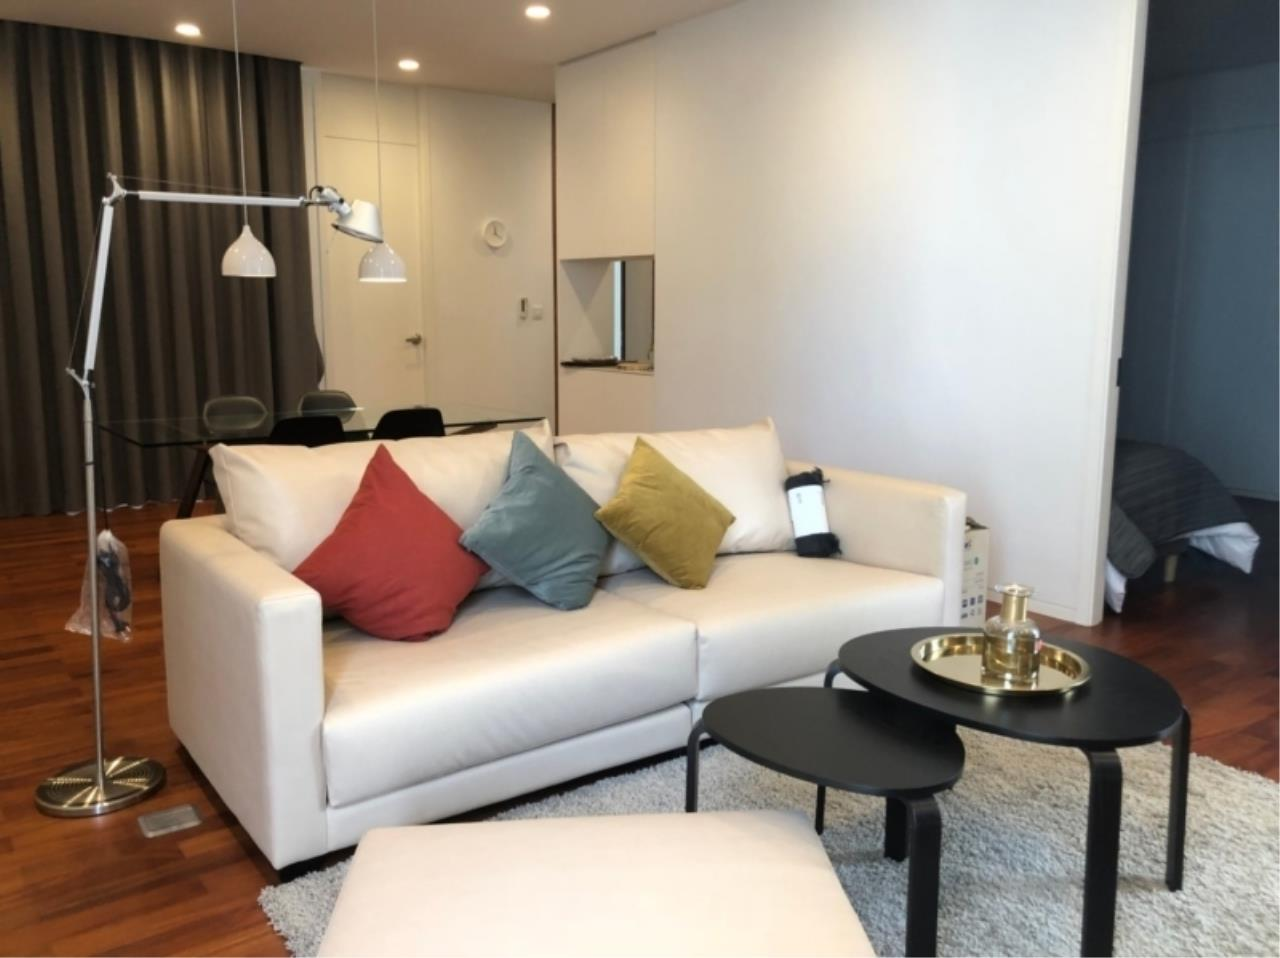 Century21 Skylux Agency's 33 Serviced Apartment / Apartment (Serviced) For Rent / 2 Bedroom / 120 SQM / BTS Asok / Bangkok 4